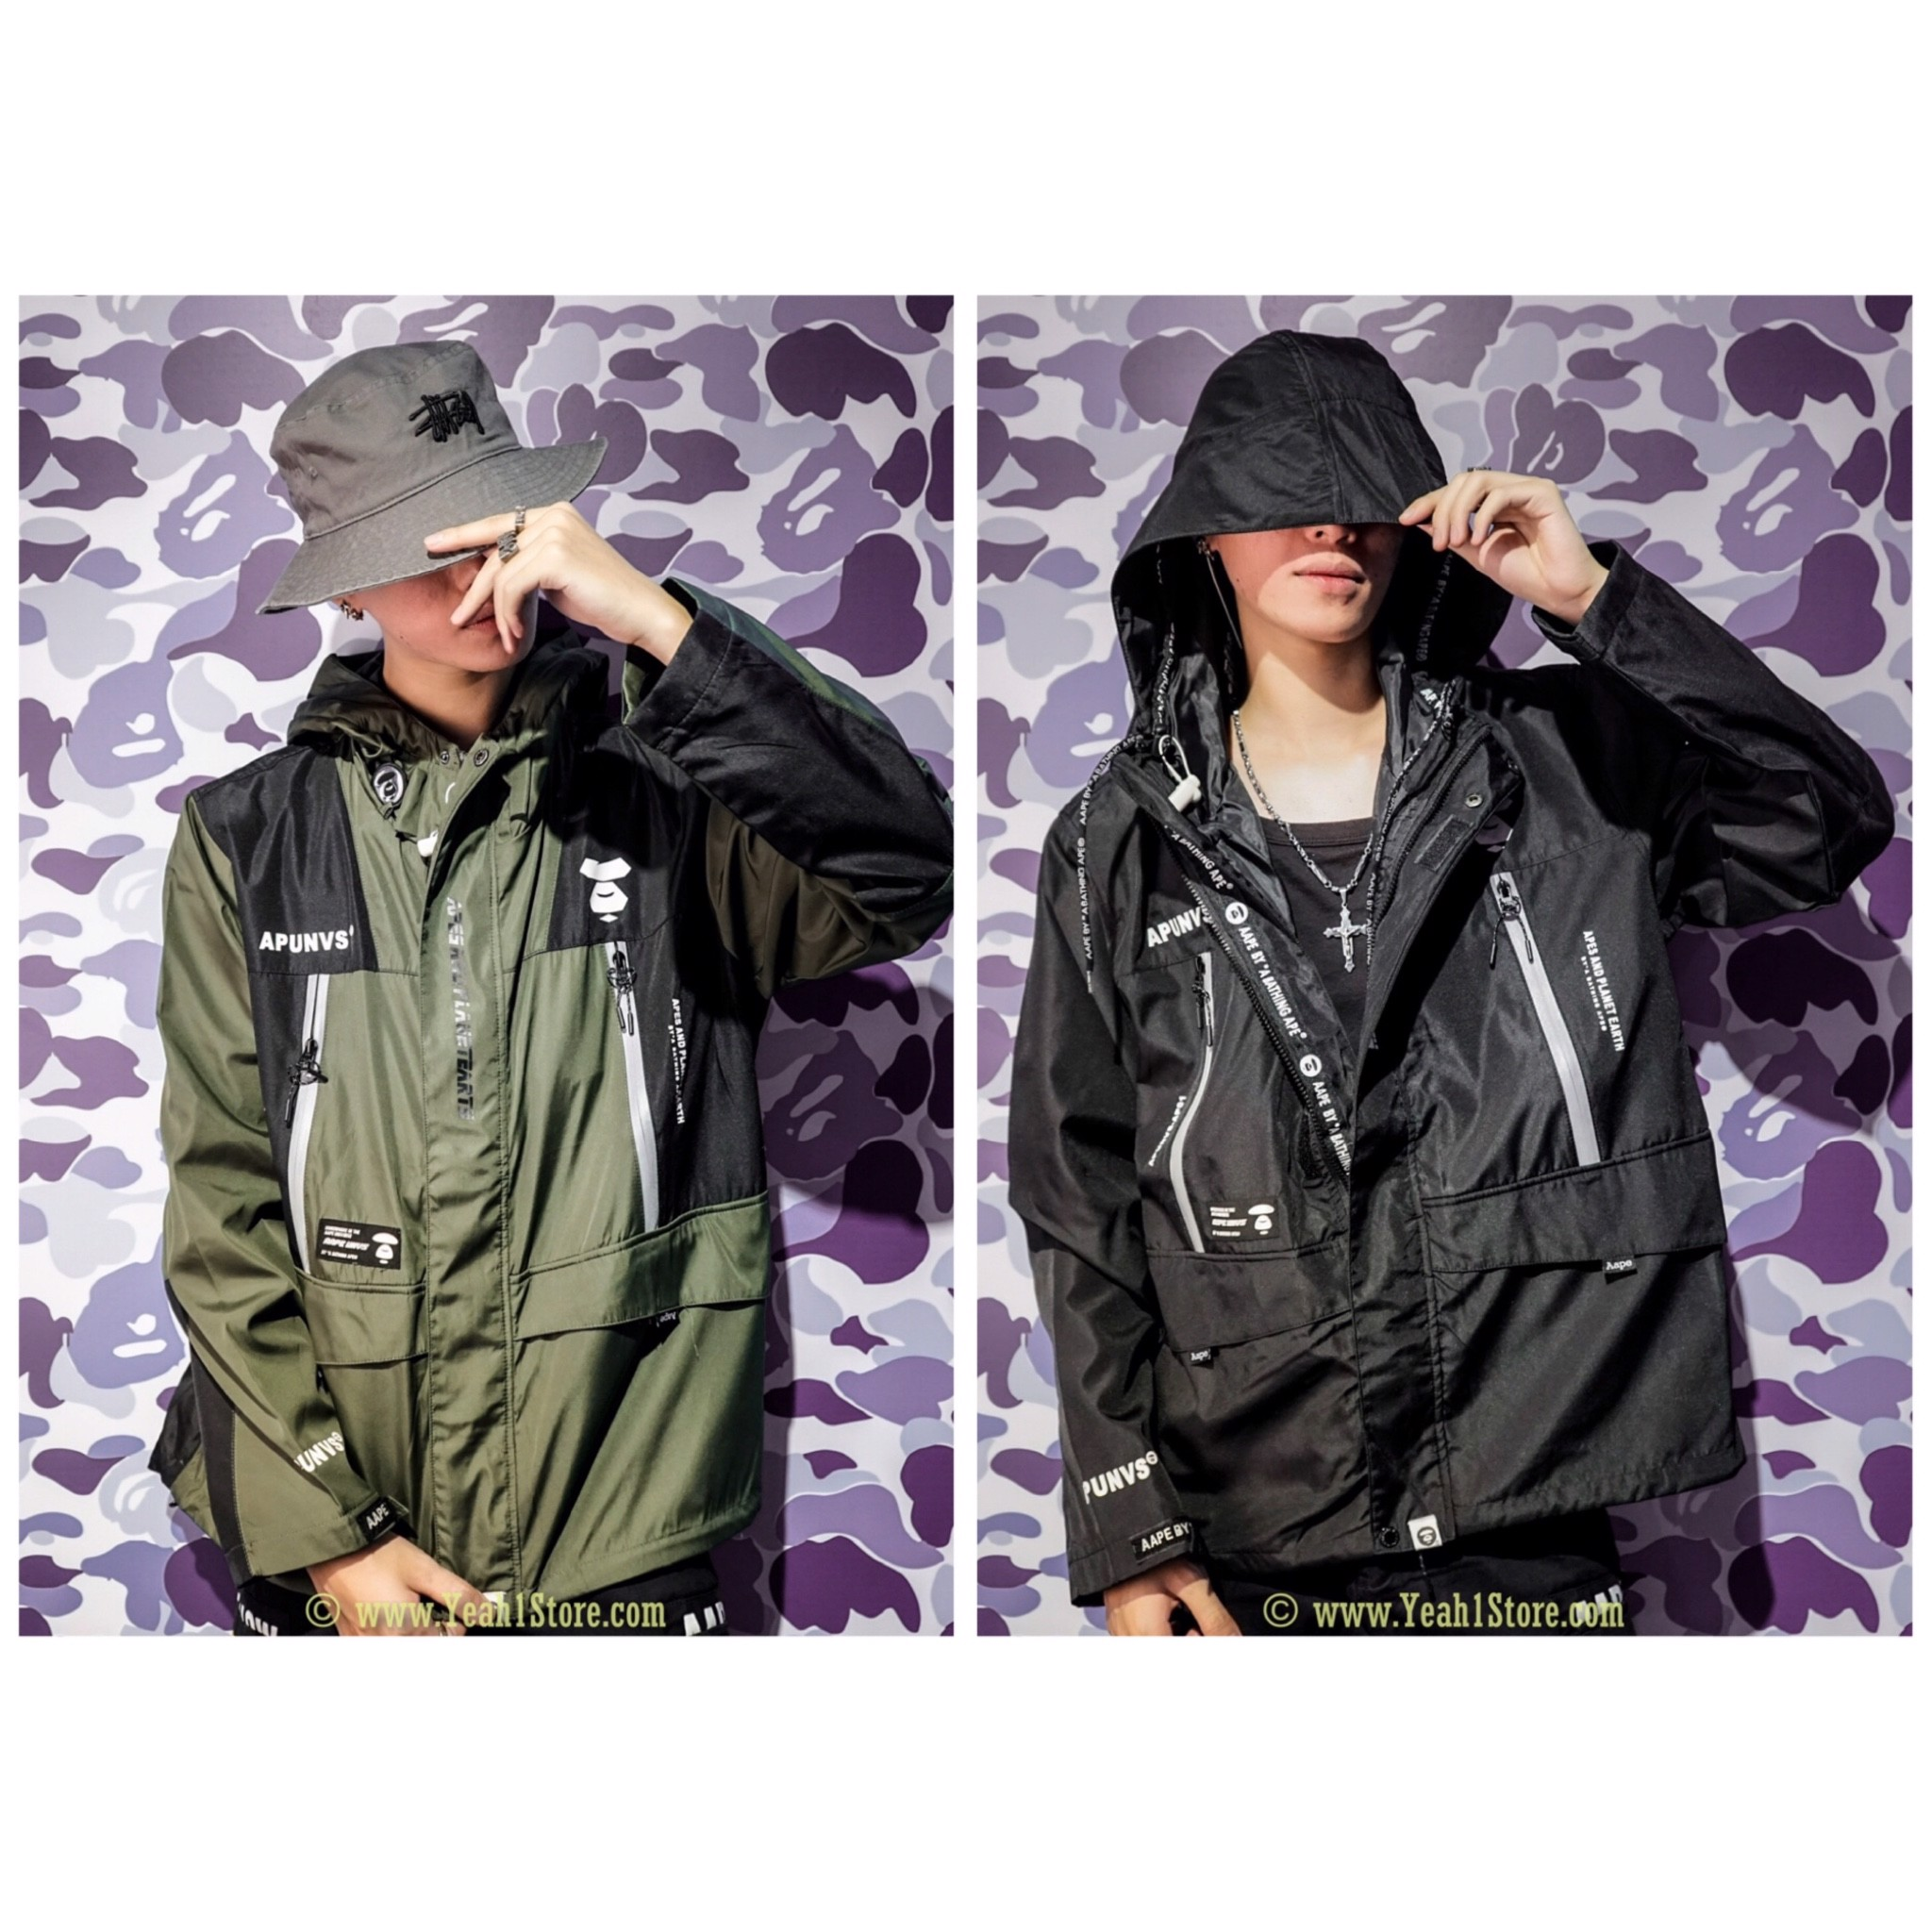 AAPE® APUNVS JACKET- BLACK/GREEN